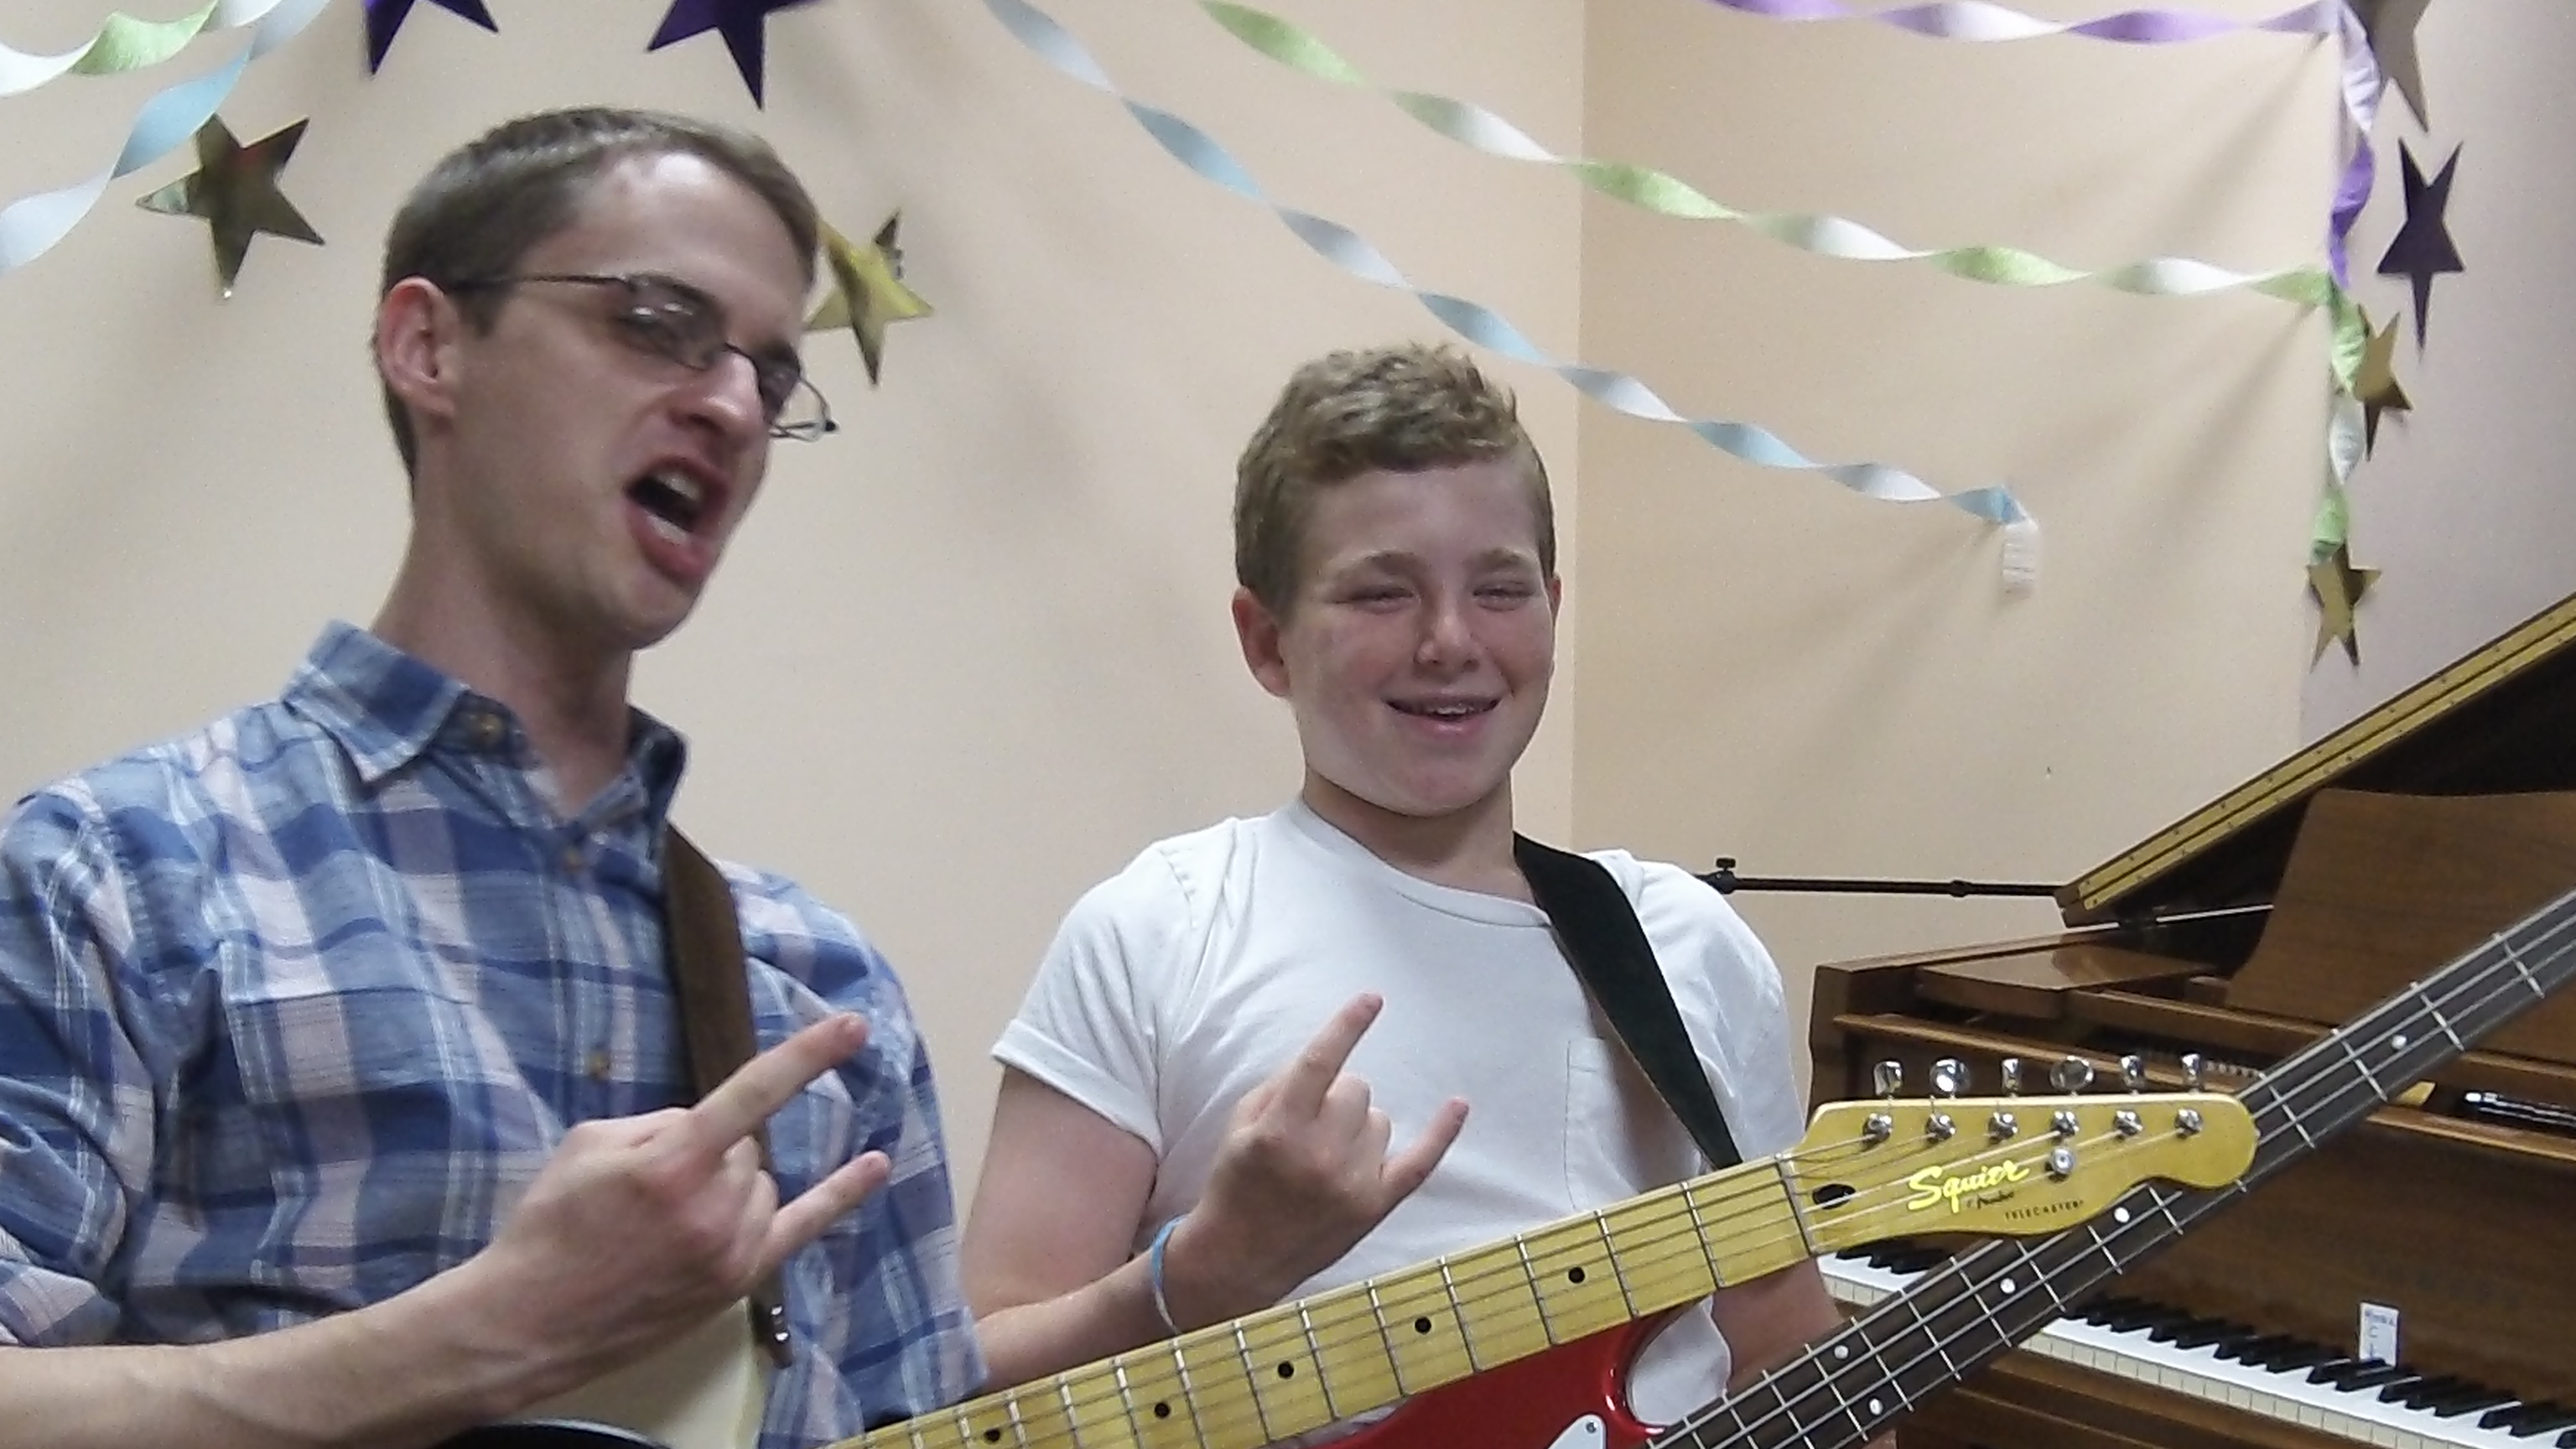 guitar teacher and student give happy devil horns at a recital